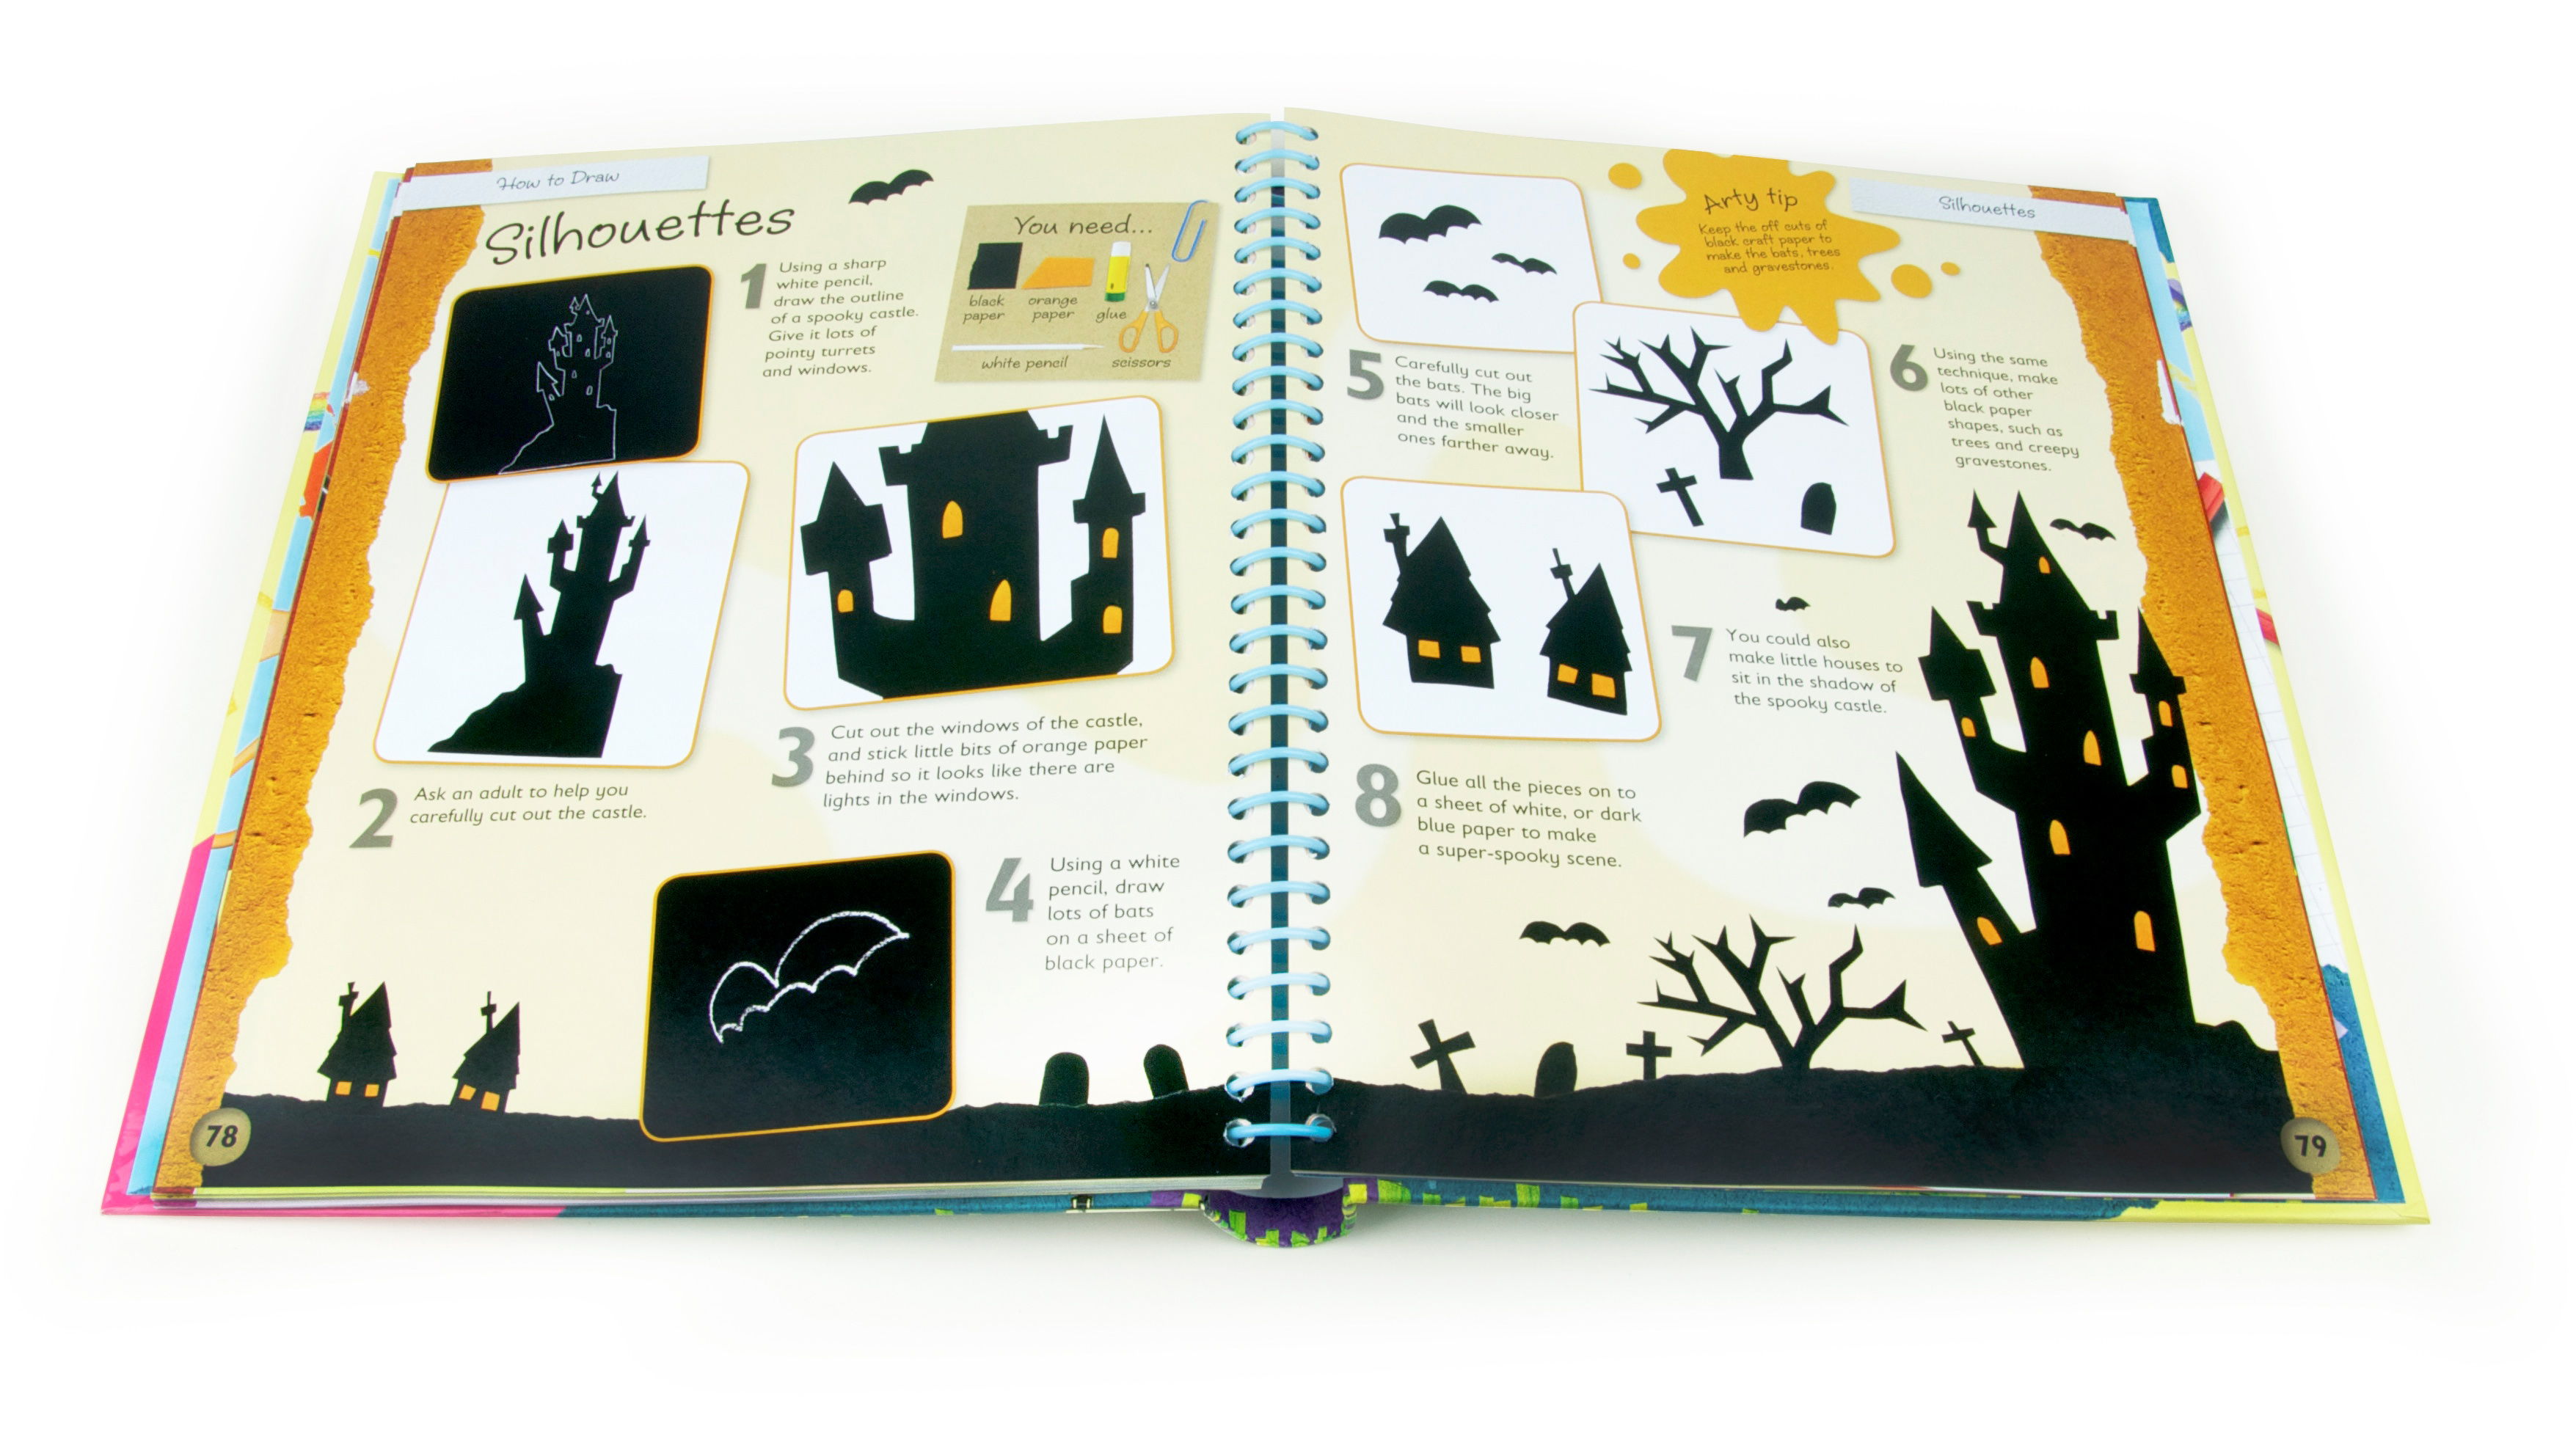 Interior spread from Childrens craft book How to draw, published by igloo books and illustrated by Fiona Gowen. This page features a black silhouette castle and bats